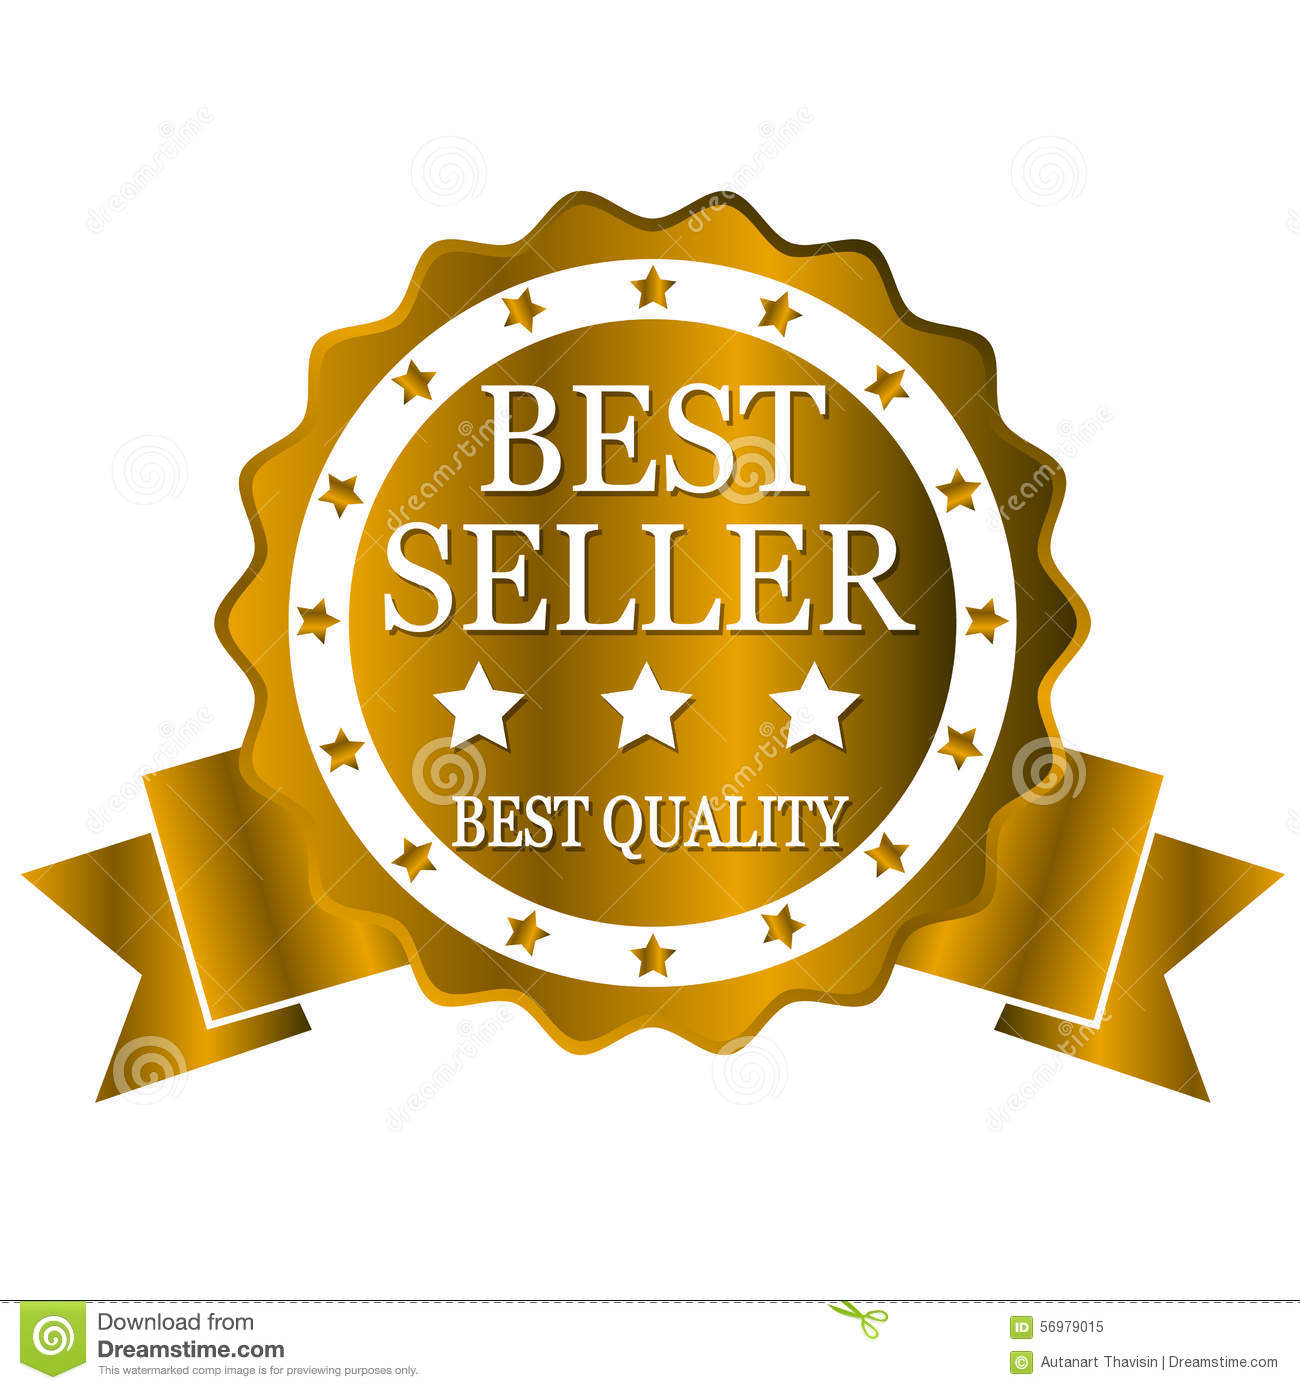 Best Seller Best Quality Stock Vector. Image Of Gold